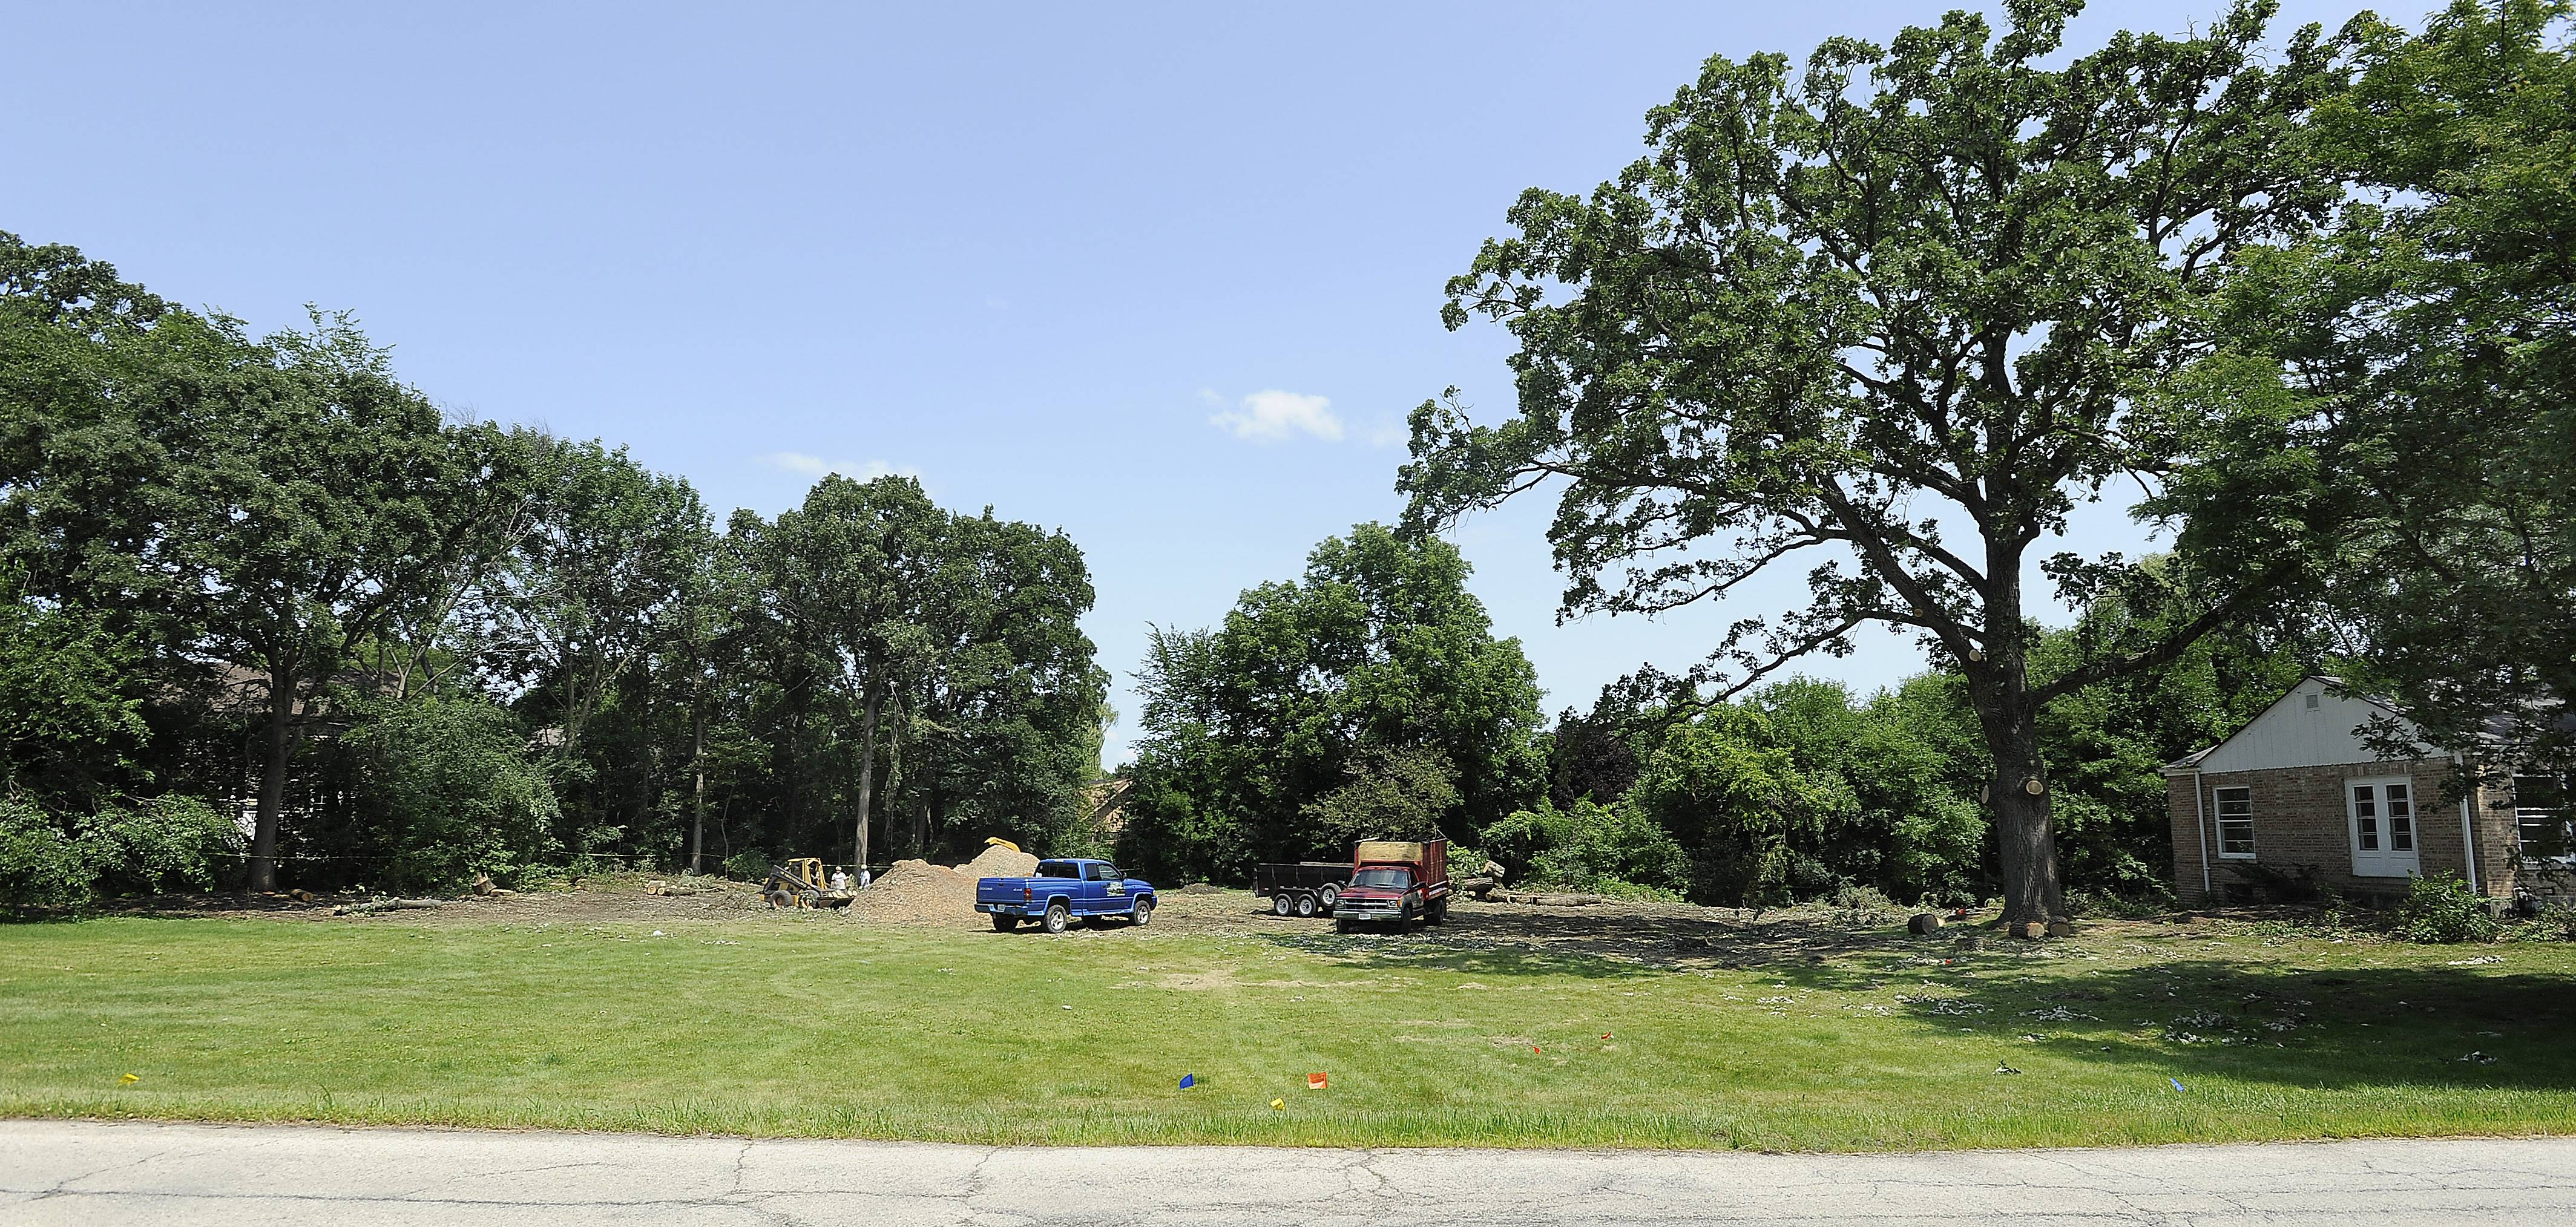 Neighbors fear this ancient oak will die after it was trimmed and two other old oaks near it were cut down over the weekend.